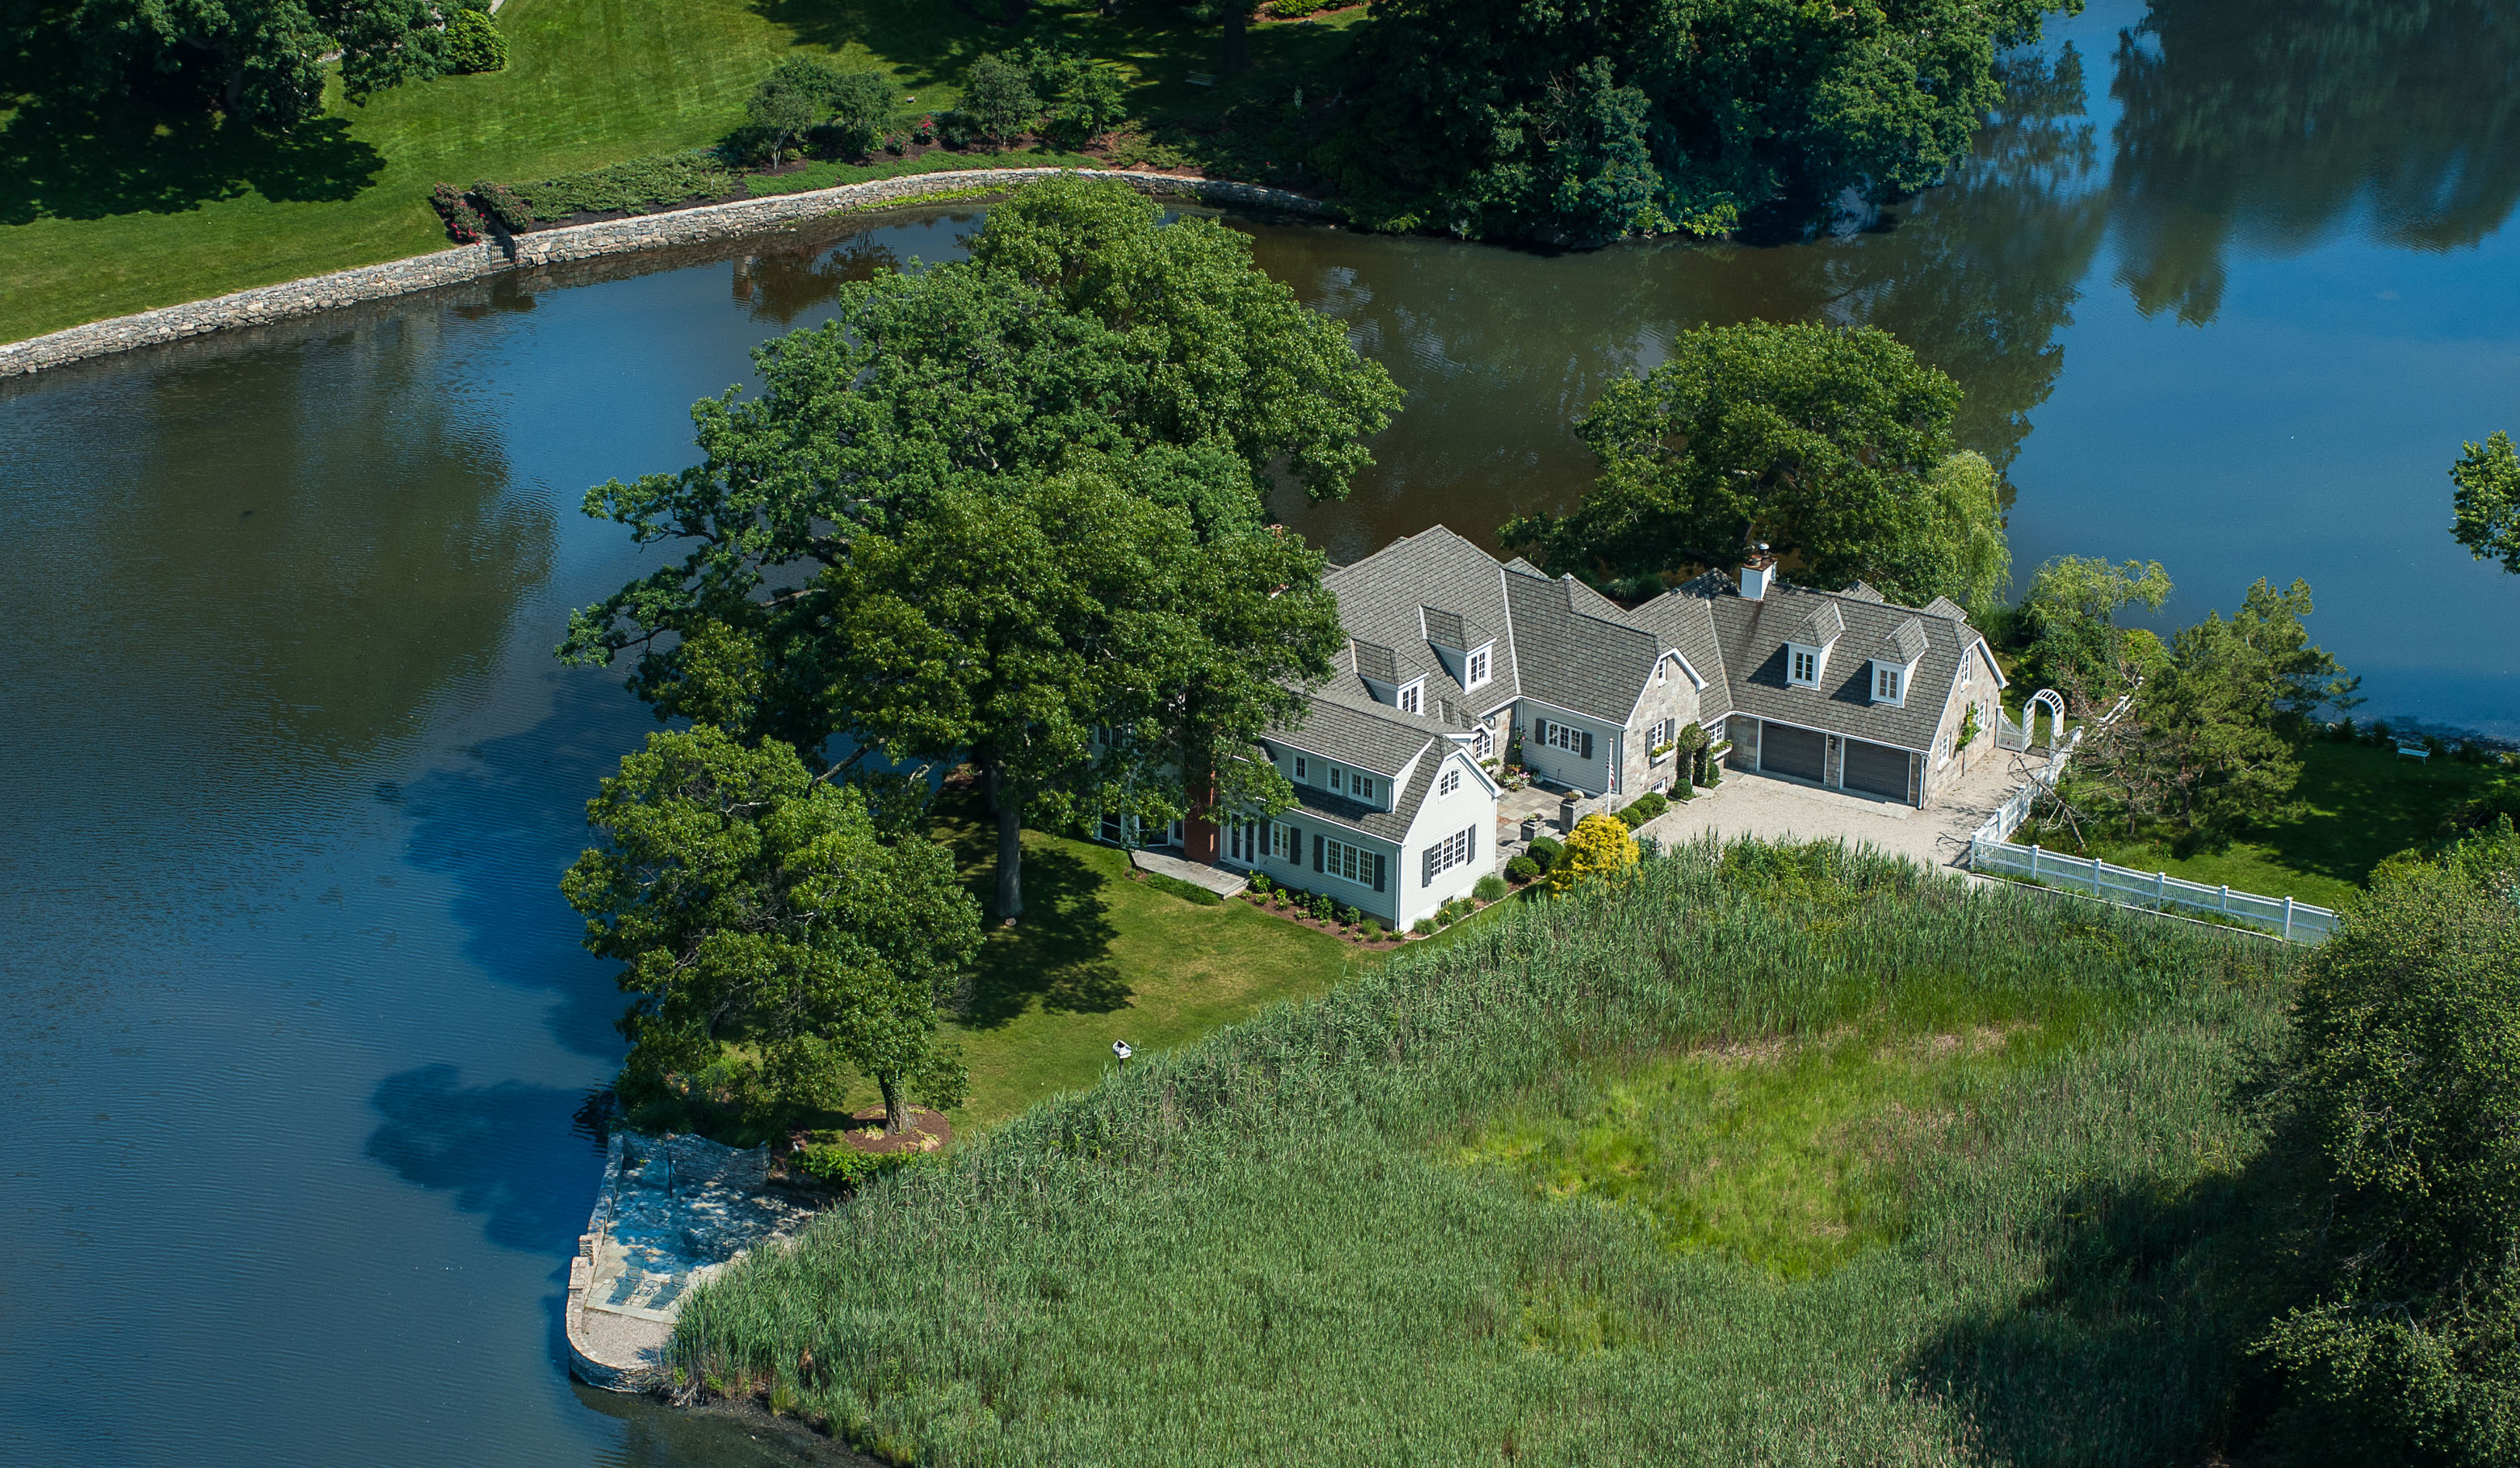 Maison unifamiliale pour l Vente à Stone & Shingle Home with Amazing Water Views 87 Goodwives River Road Darien, Connecticut 06820 États-Unis